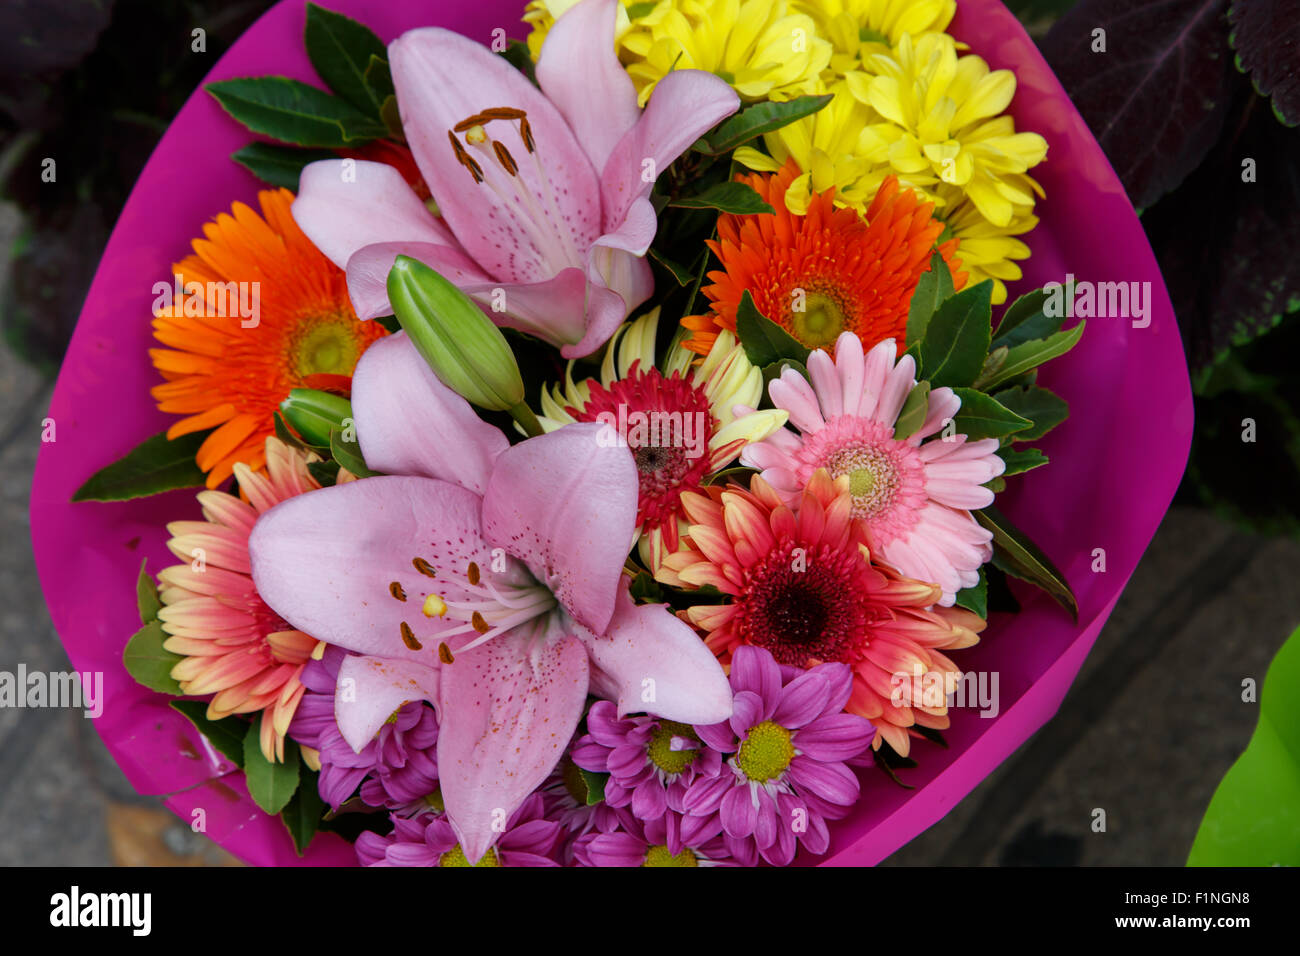 flowers bouquet arrange for decoration in home - Stock Image